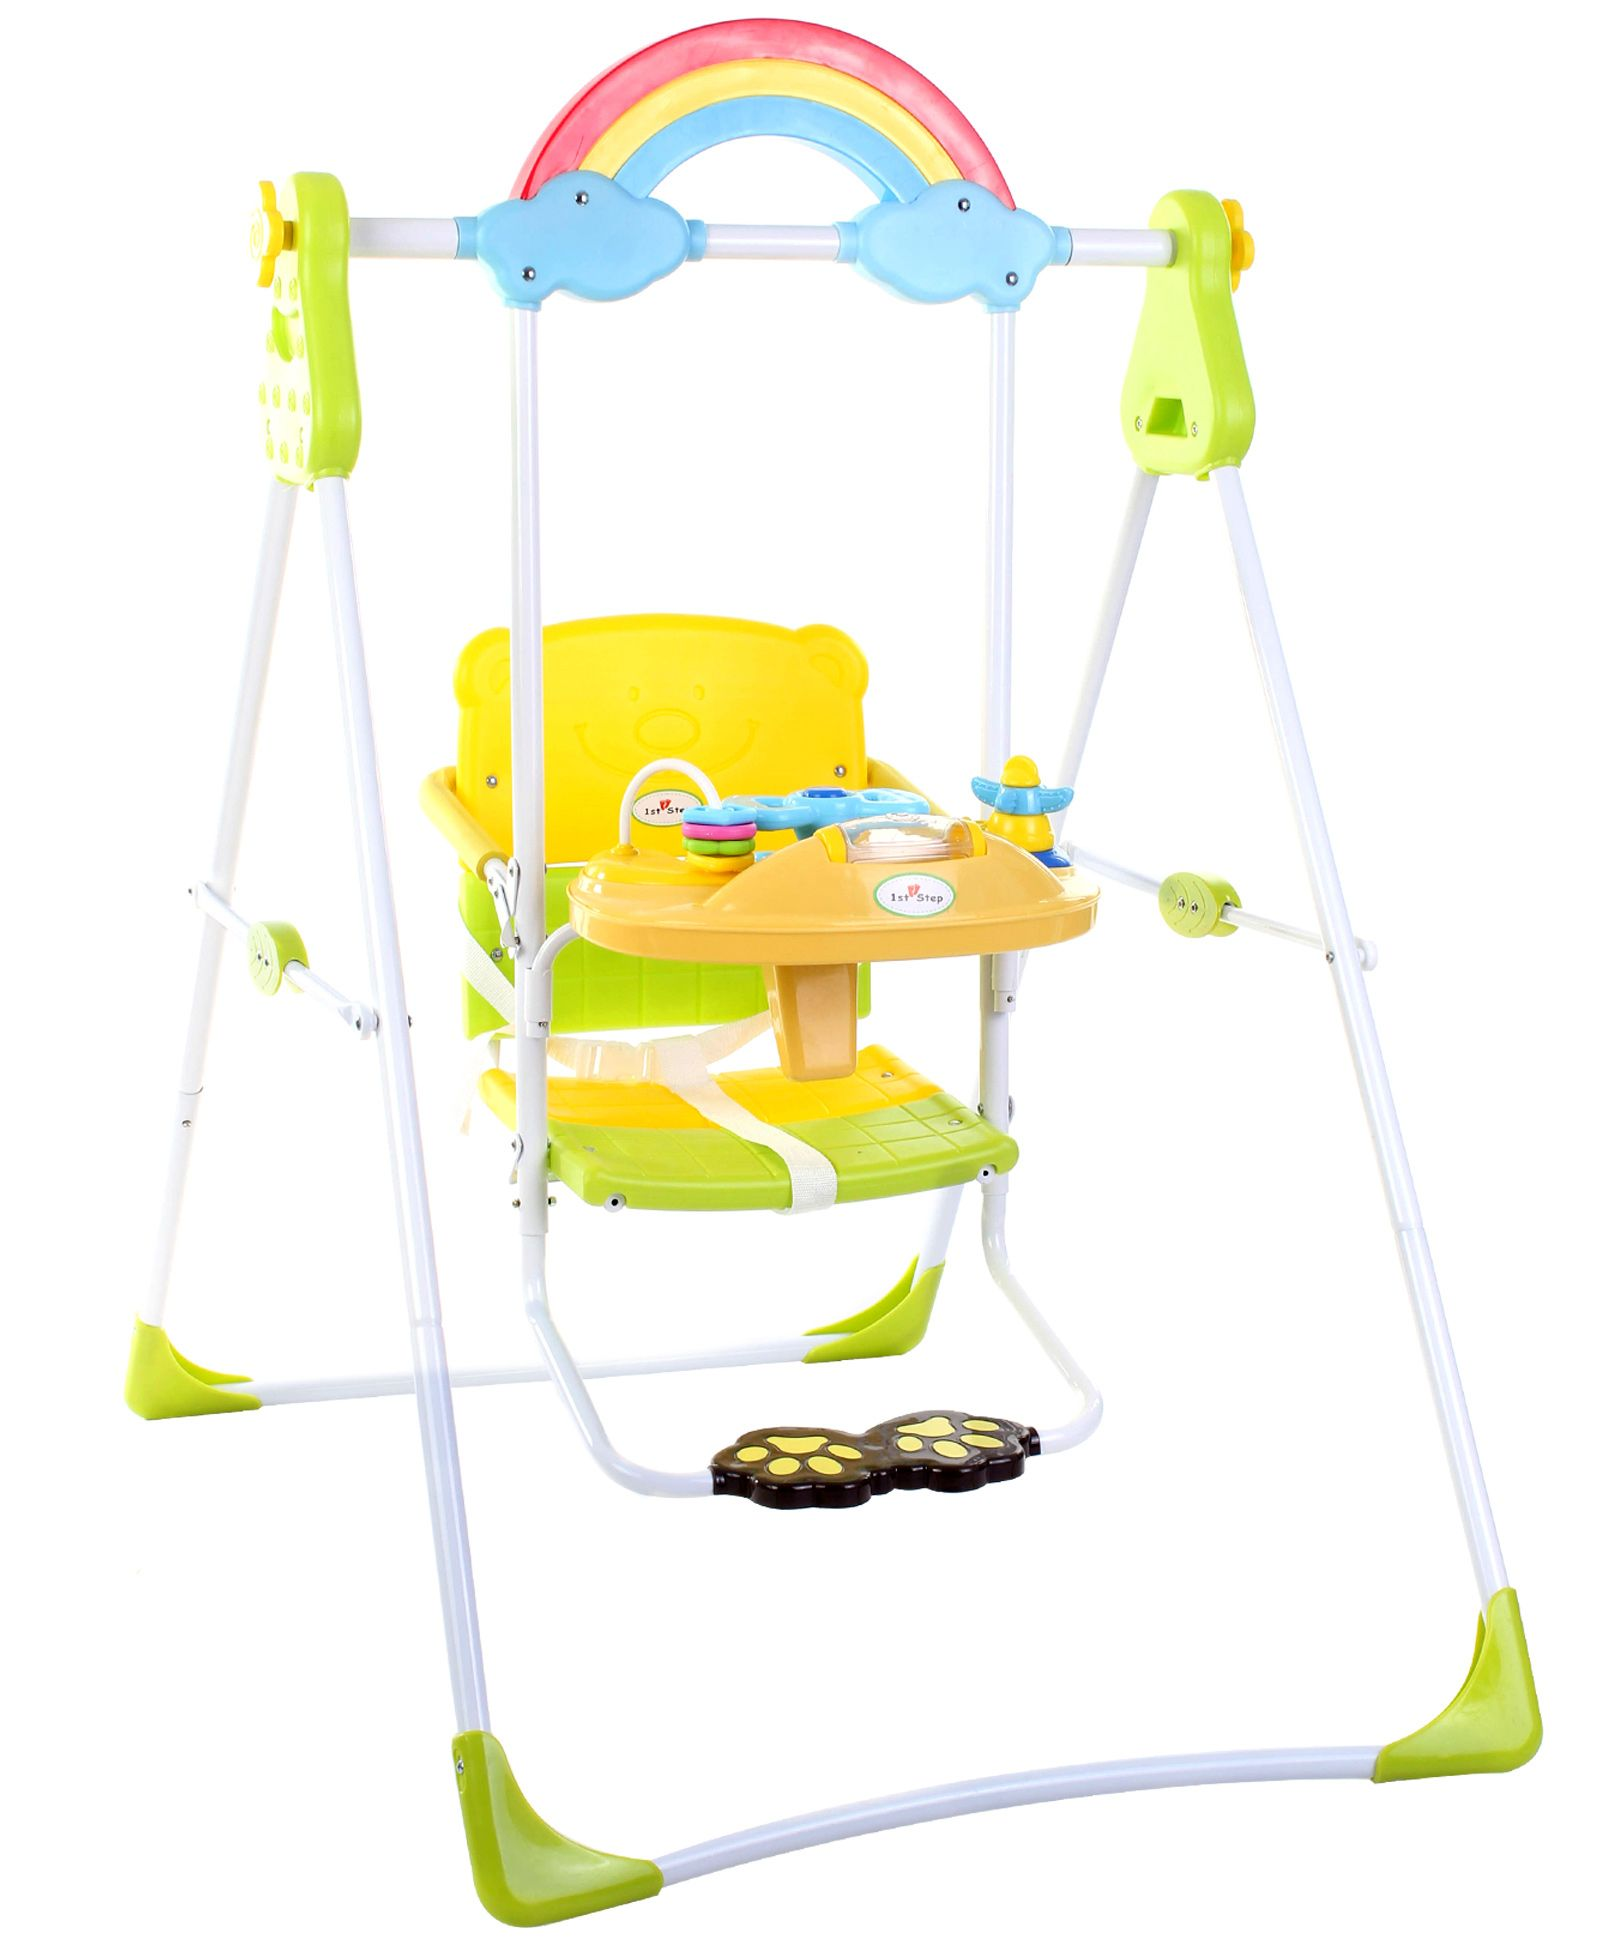 1st Step Swing With Music - Green And Yellow